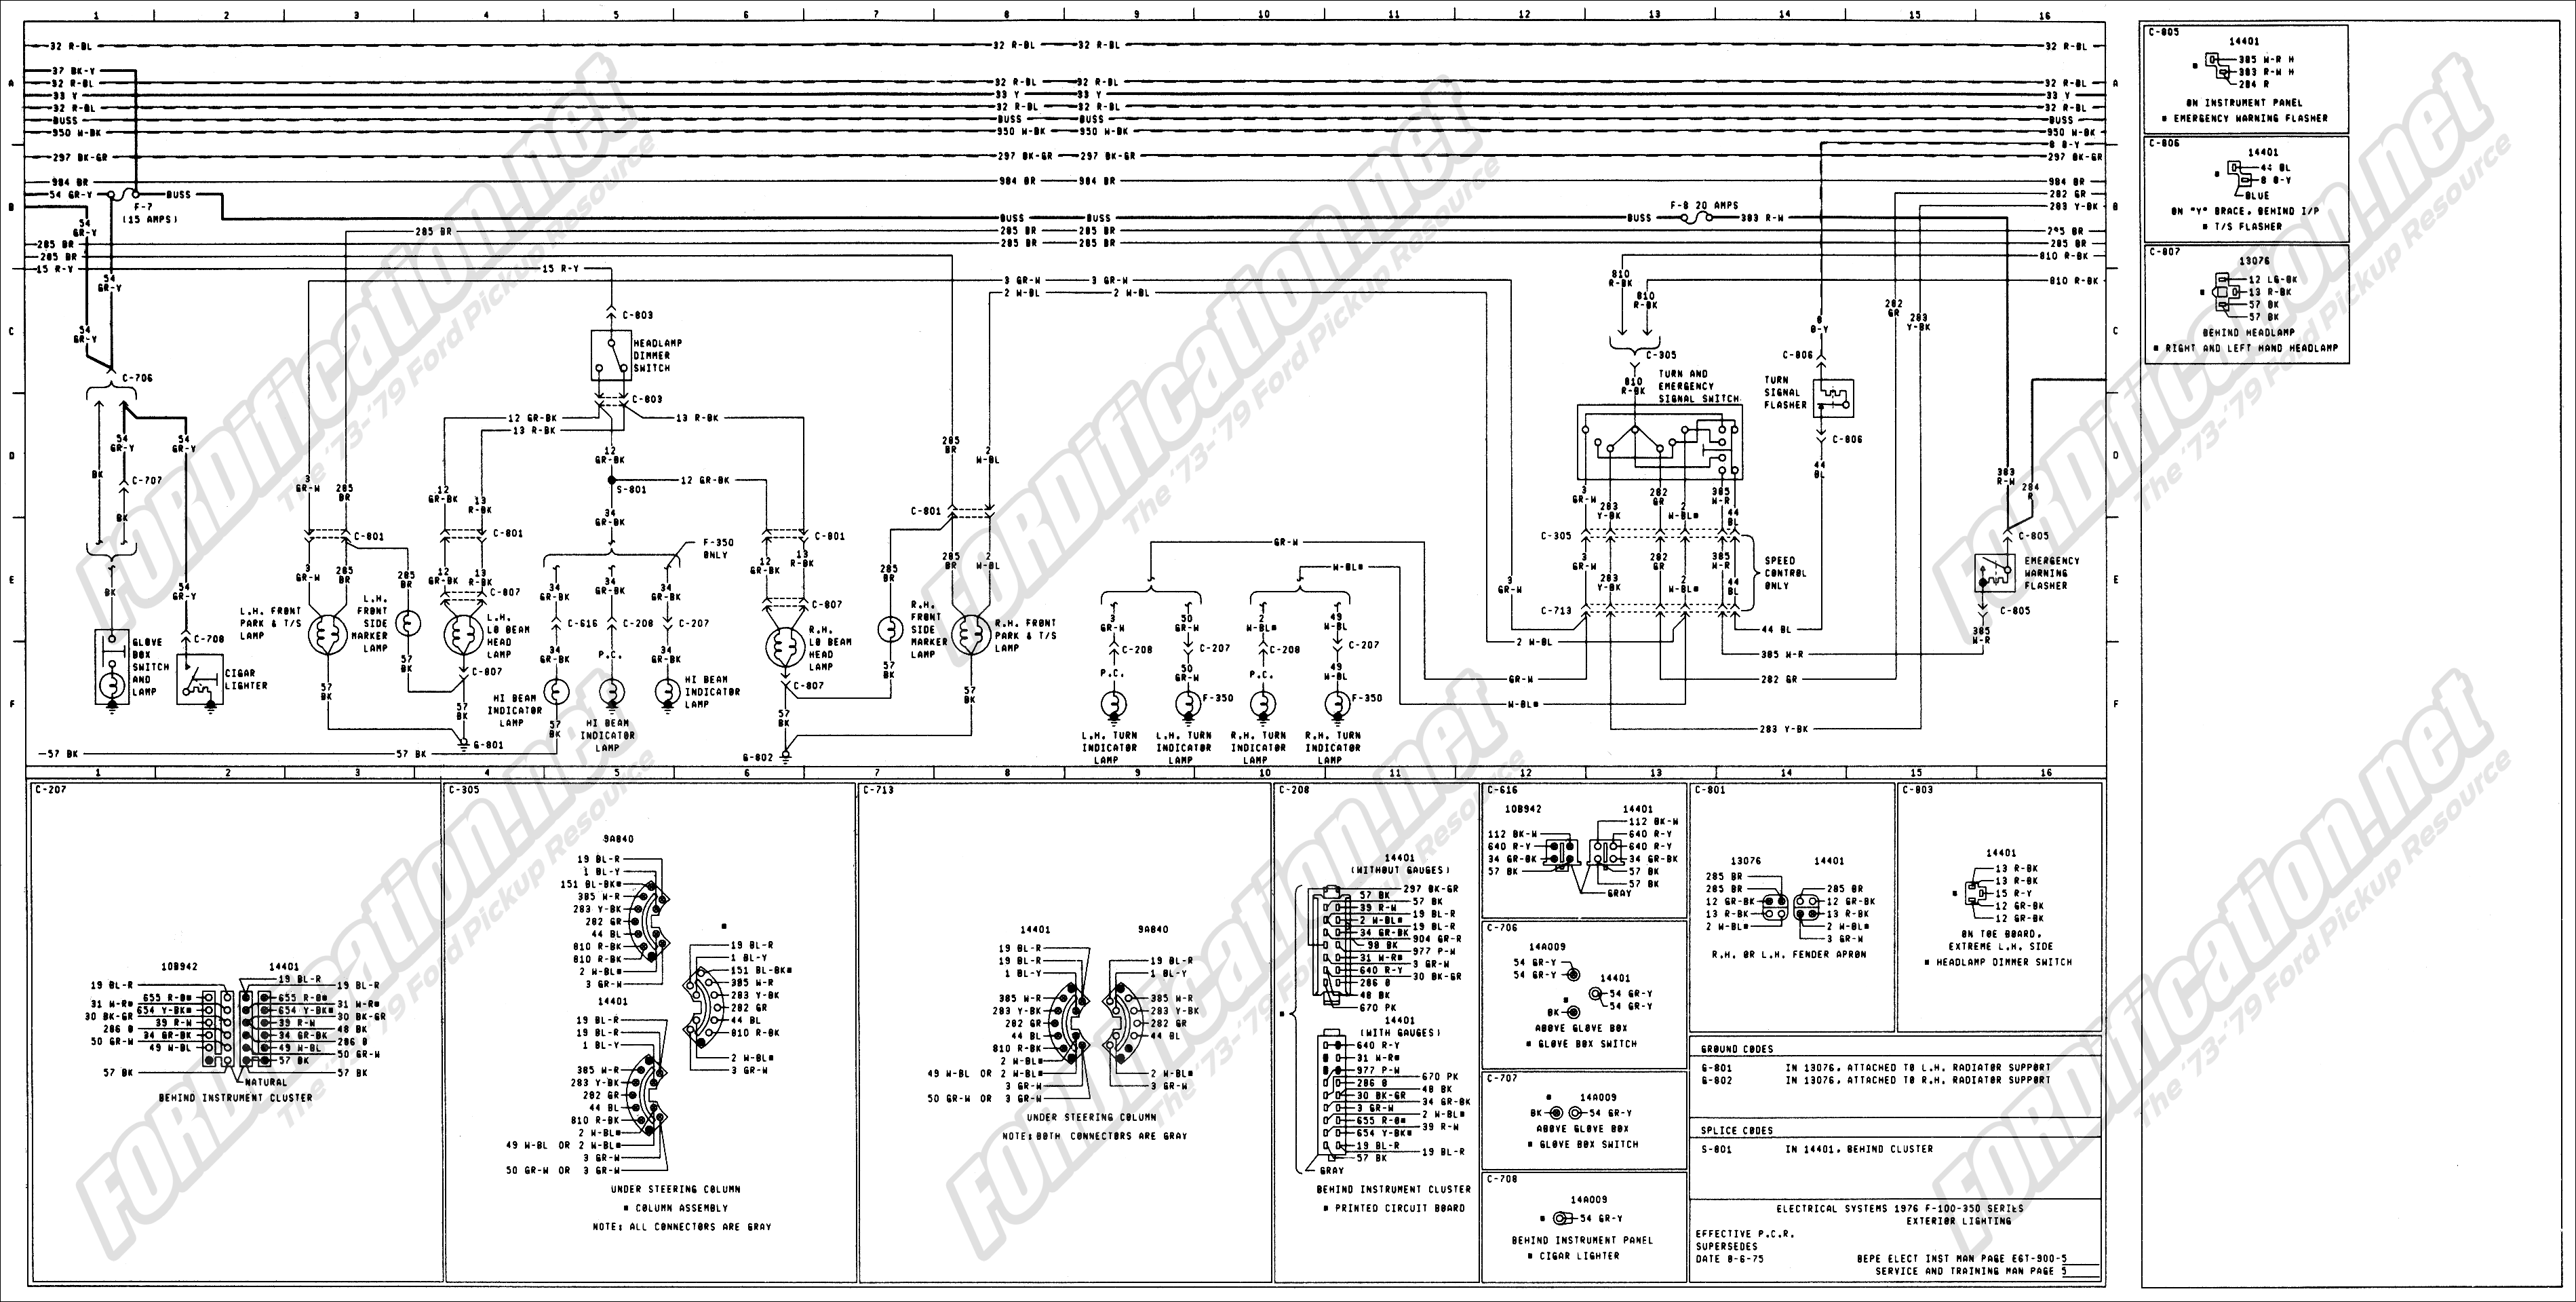 1978 ford f250 wiring diagram detailed schematics diagram rh lelandlutheran  com Electronic Ignition Wiring Diagram Ignition